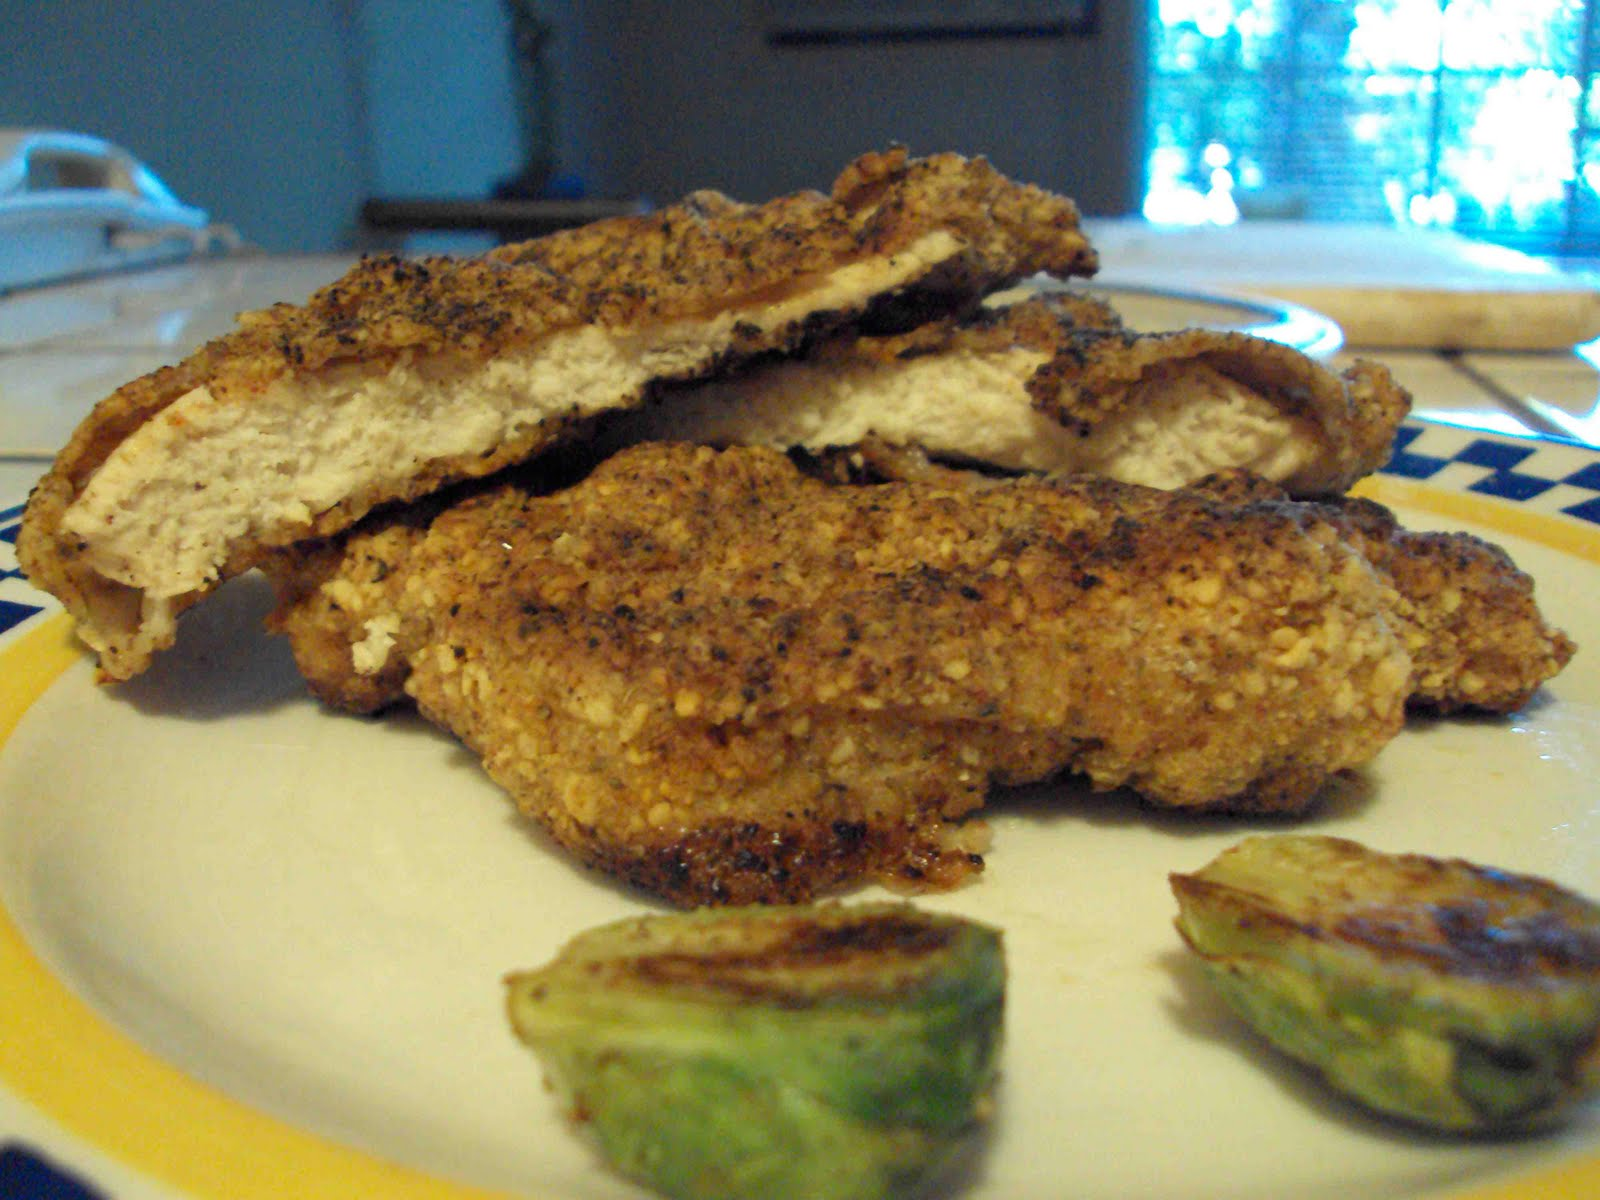 Southern Fried Chicken and Golden Crusted Brussels Sprouts!